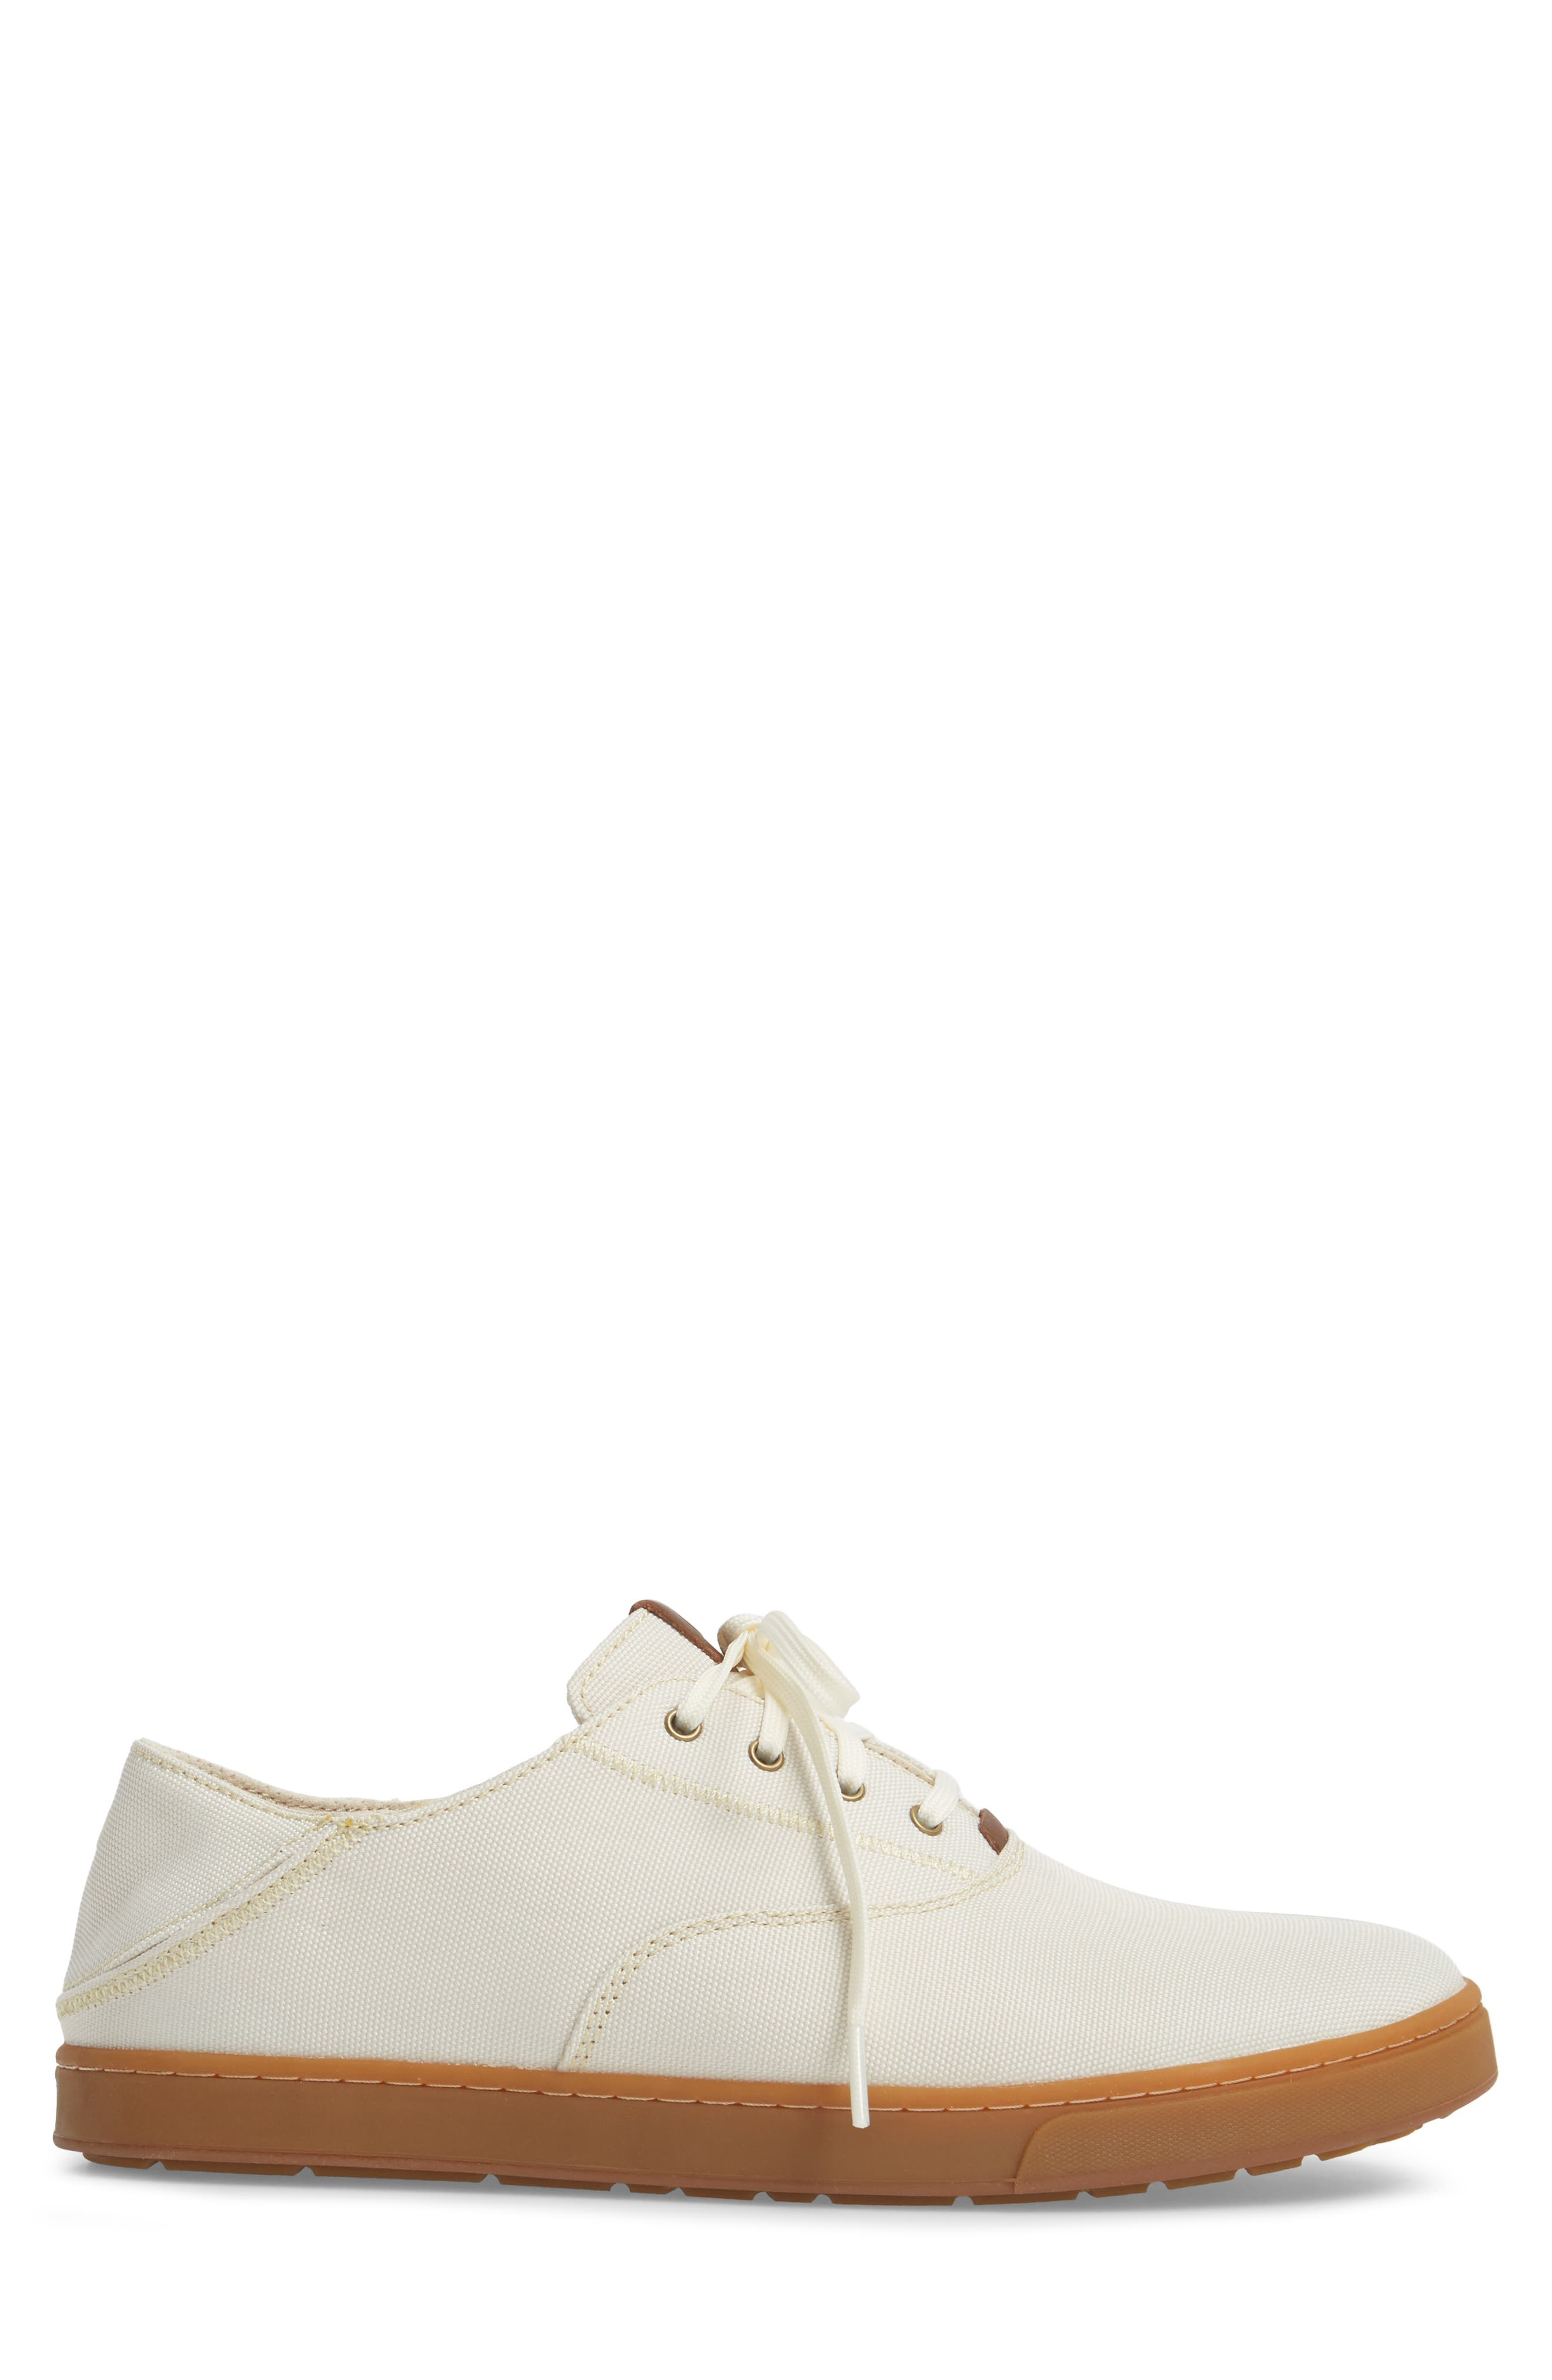 Kahu Collapsible Lace-Up Sneaker,                             Alternate thumbnail 2, color,                             OFF WHITE/ TOFFEE